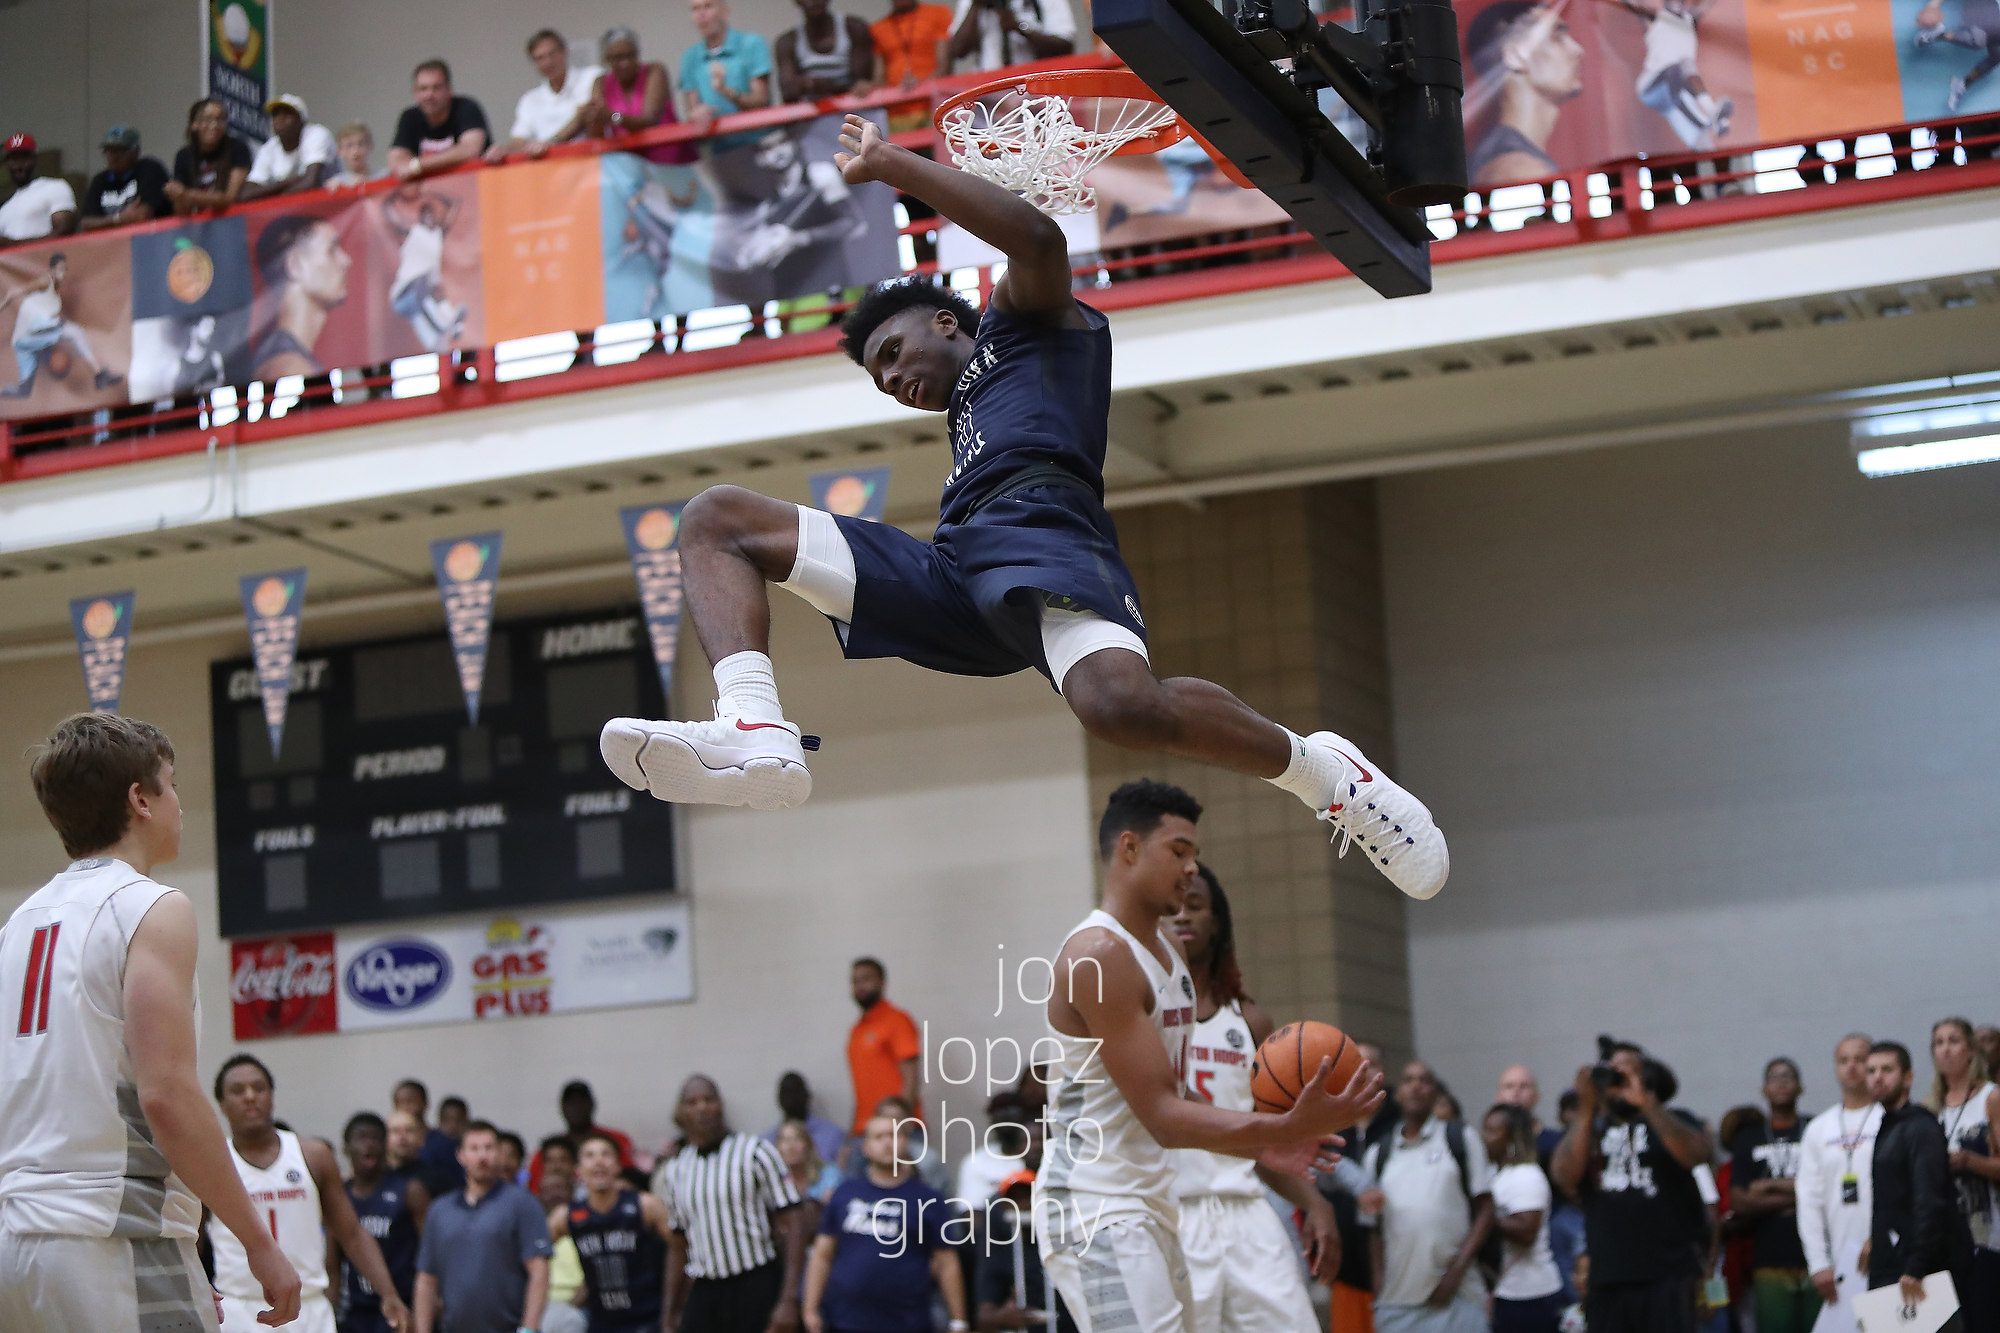 New York Rens standout guard and Queens, NY native Hamidou Diallo may have been the most exciting player to watch in the EYBL in 2016. Here he double pumped to avoid a block, absorbed contact, and still threw it down much to the delight of his teammates and the crowd.